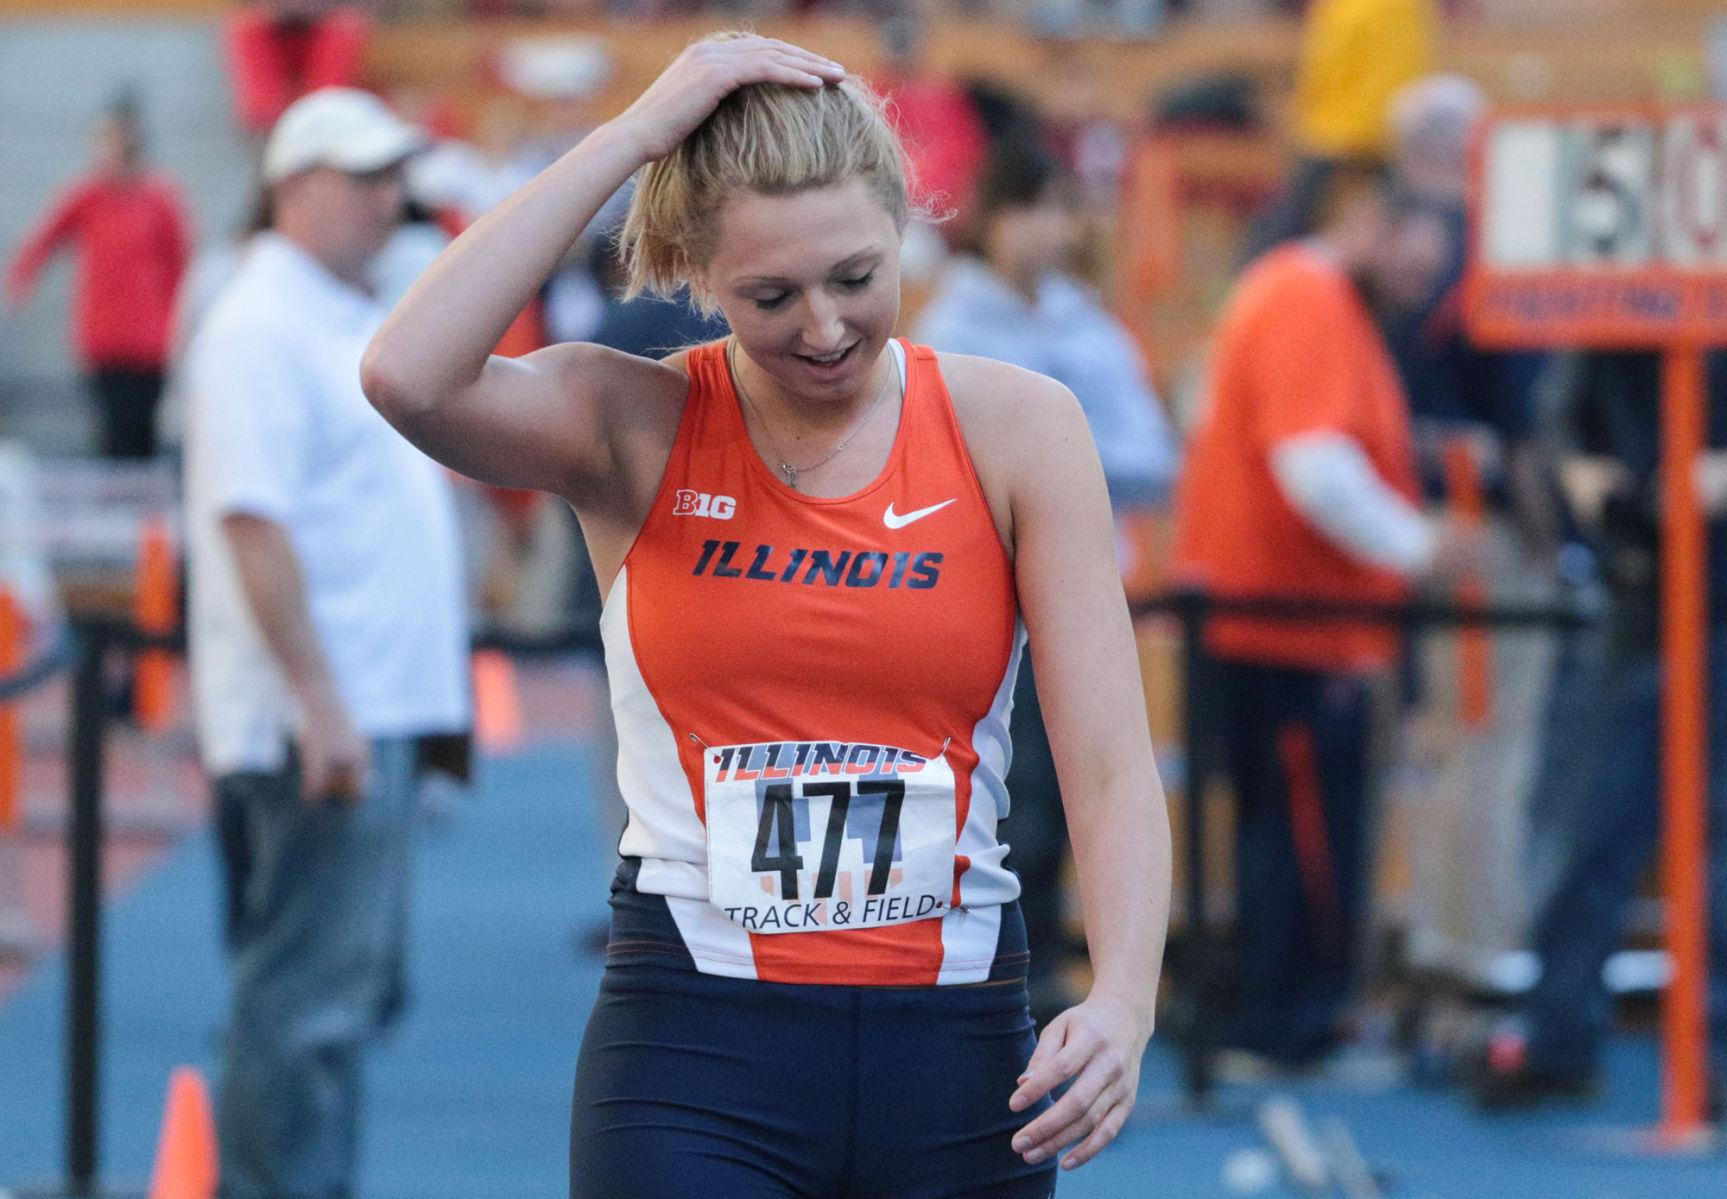 Illinois' Kandie Bloch-Jones prepares to warm-up at the Orange & Blue meet at the Armory on Feb. 21. At last year's Twilight meet, Bloch-Jones took first place in the high jump.